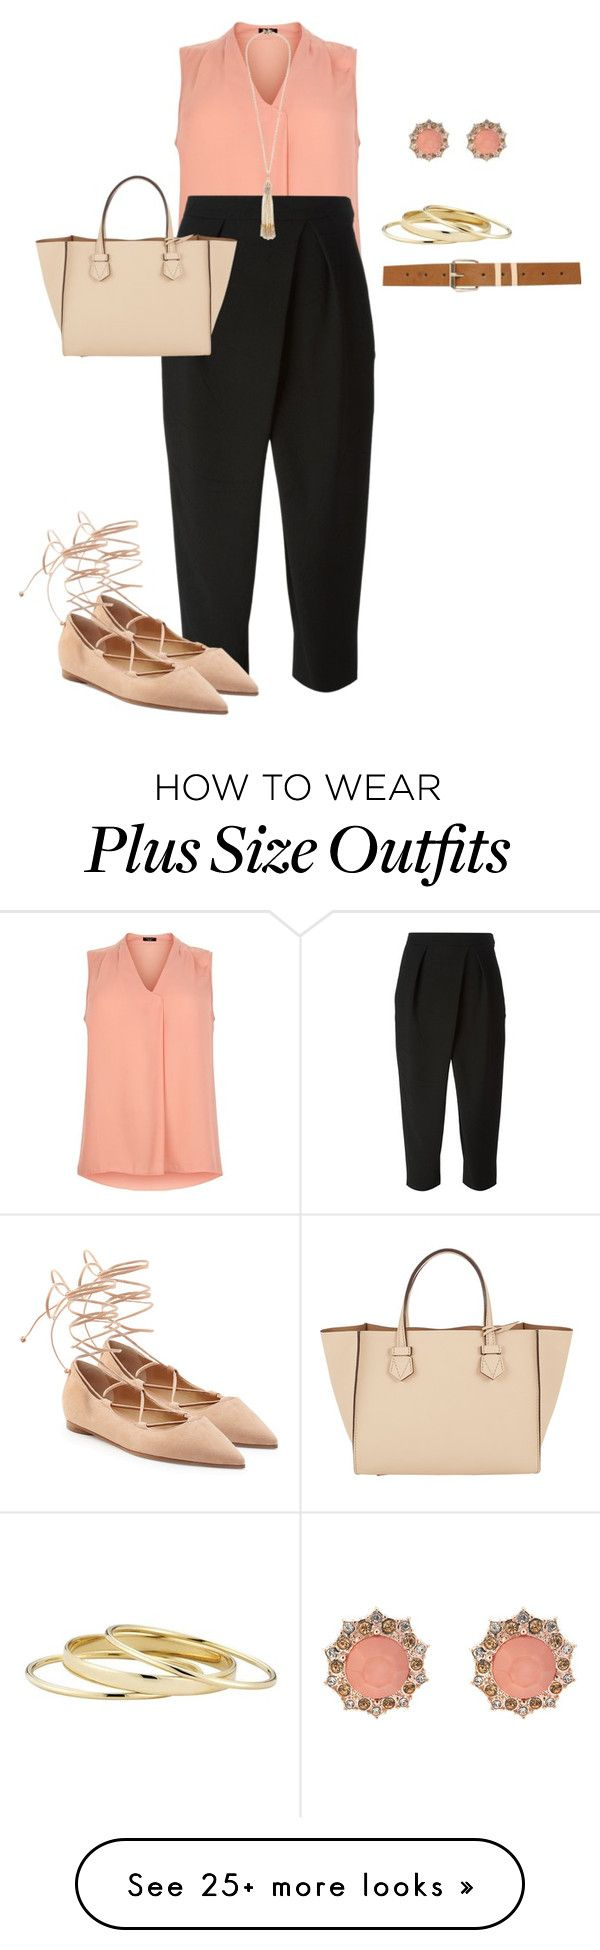 """""""plus size spring/summer work looks"""" by kristie-payne on Polyvore featuring New Look, Chloé, Miriam Haskell, Oasis, Moreau, Michael Kors, Minor Obsessions and M&Co"""